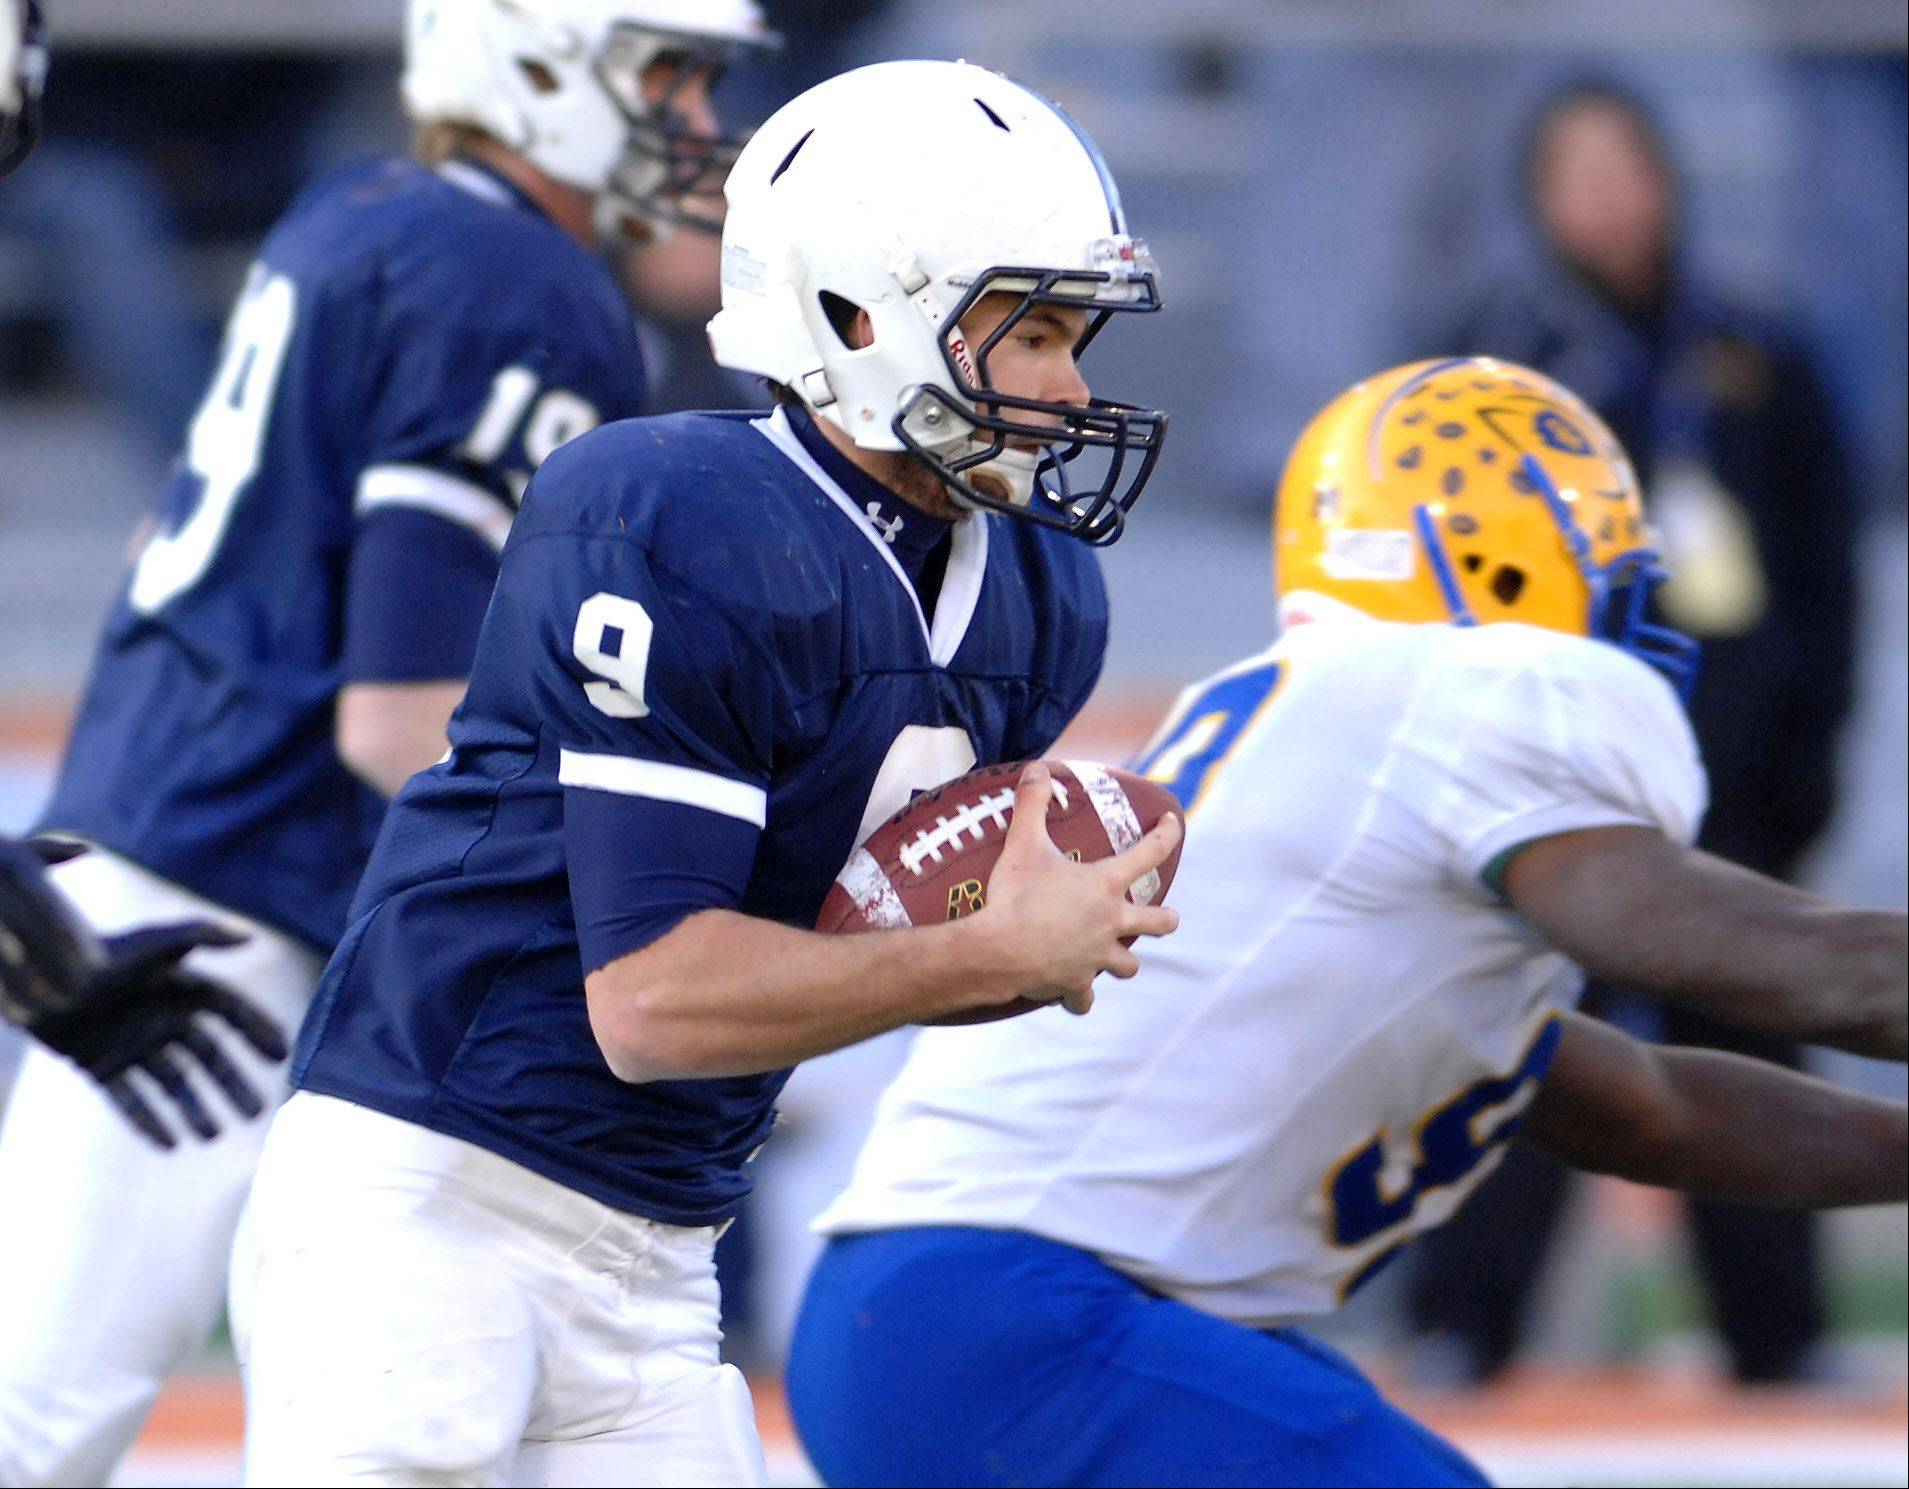 Cary-Grove's Quinn Baker (9) finds some running room around the corner against Crete-Monee during Saturday's Class 6A state title game at Memorial Stadium in Champaign.